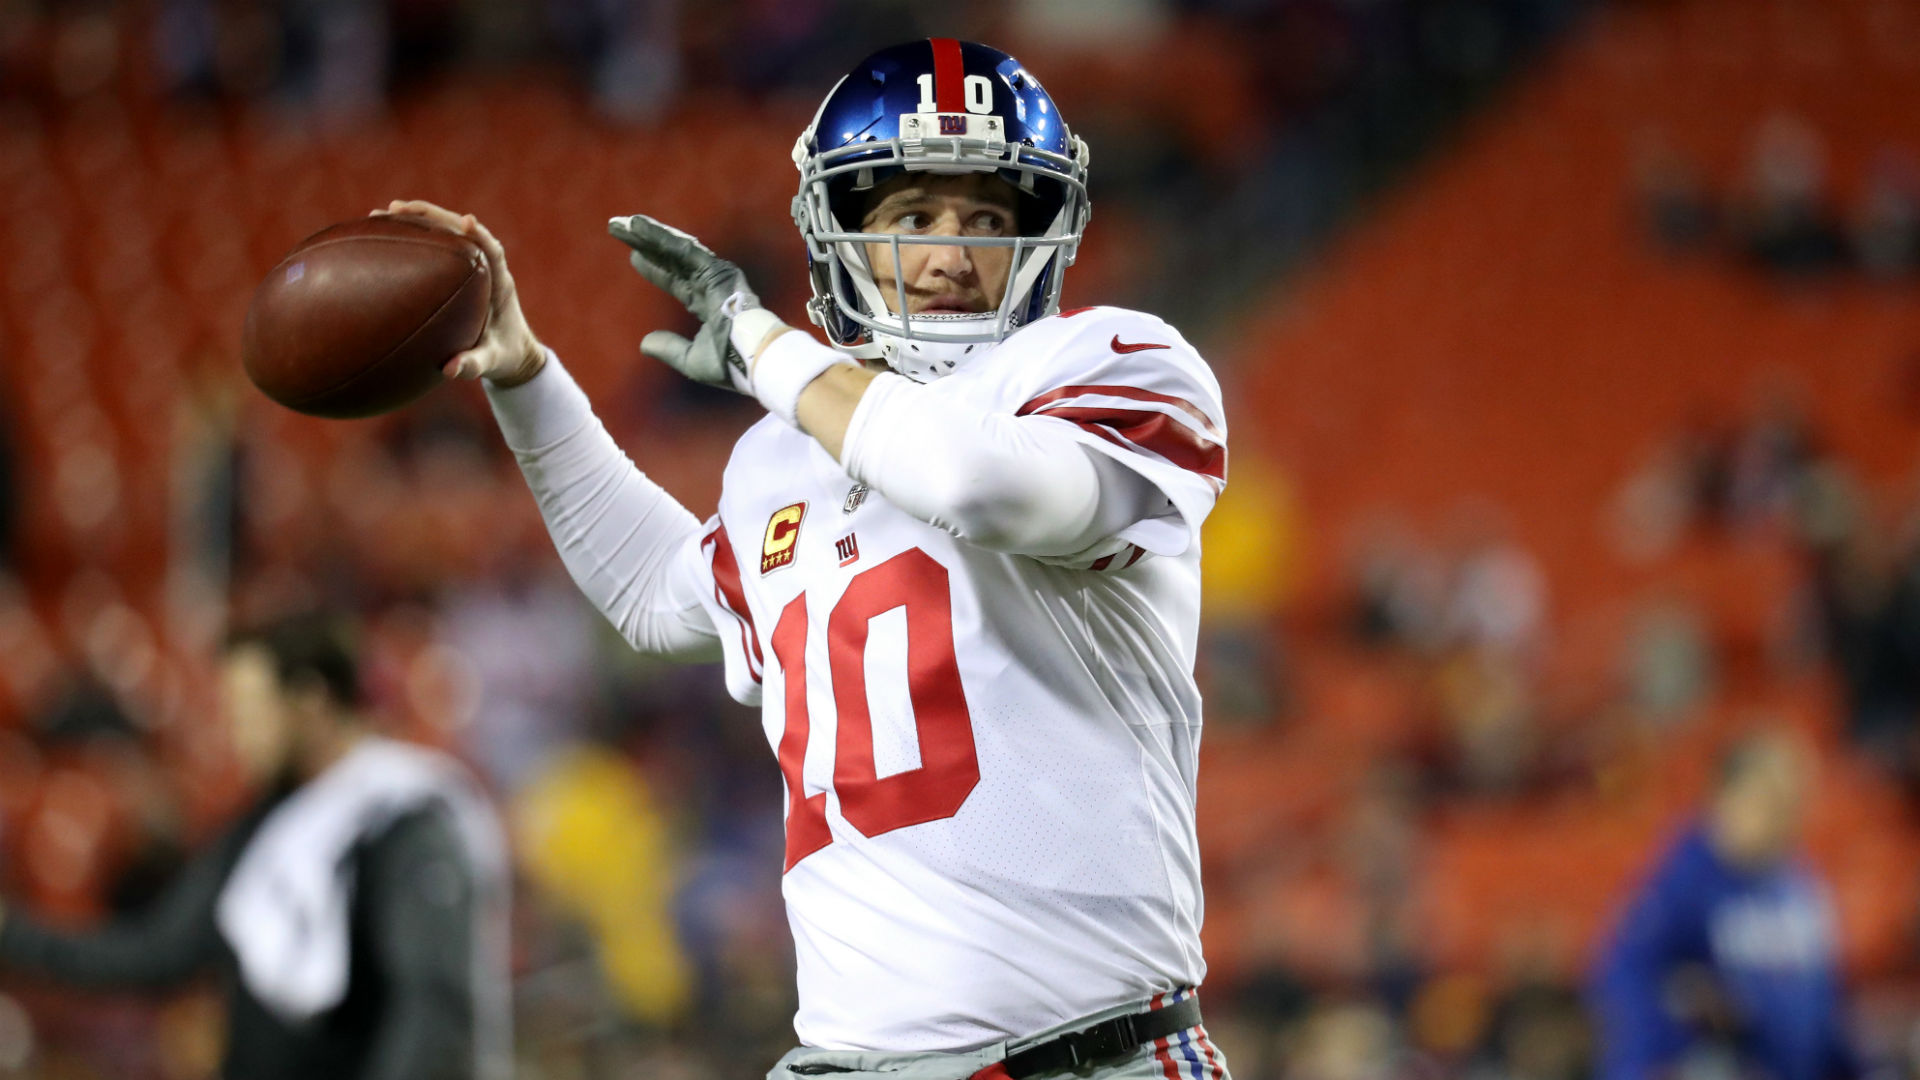 Eli Manning has 'got years left' - Giants coach hopeful over star QB